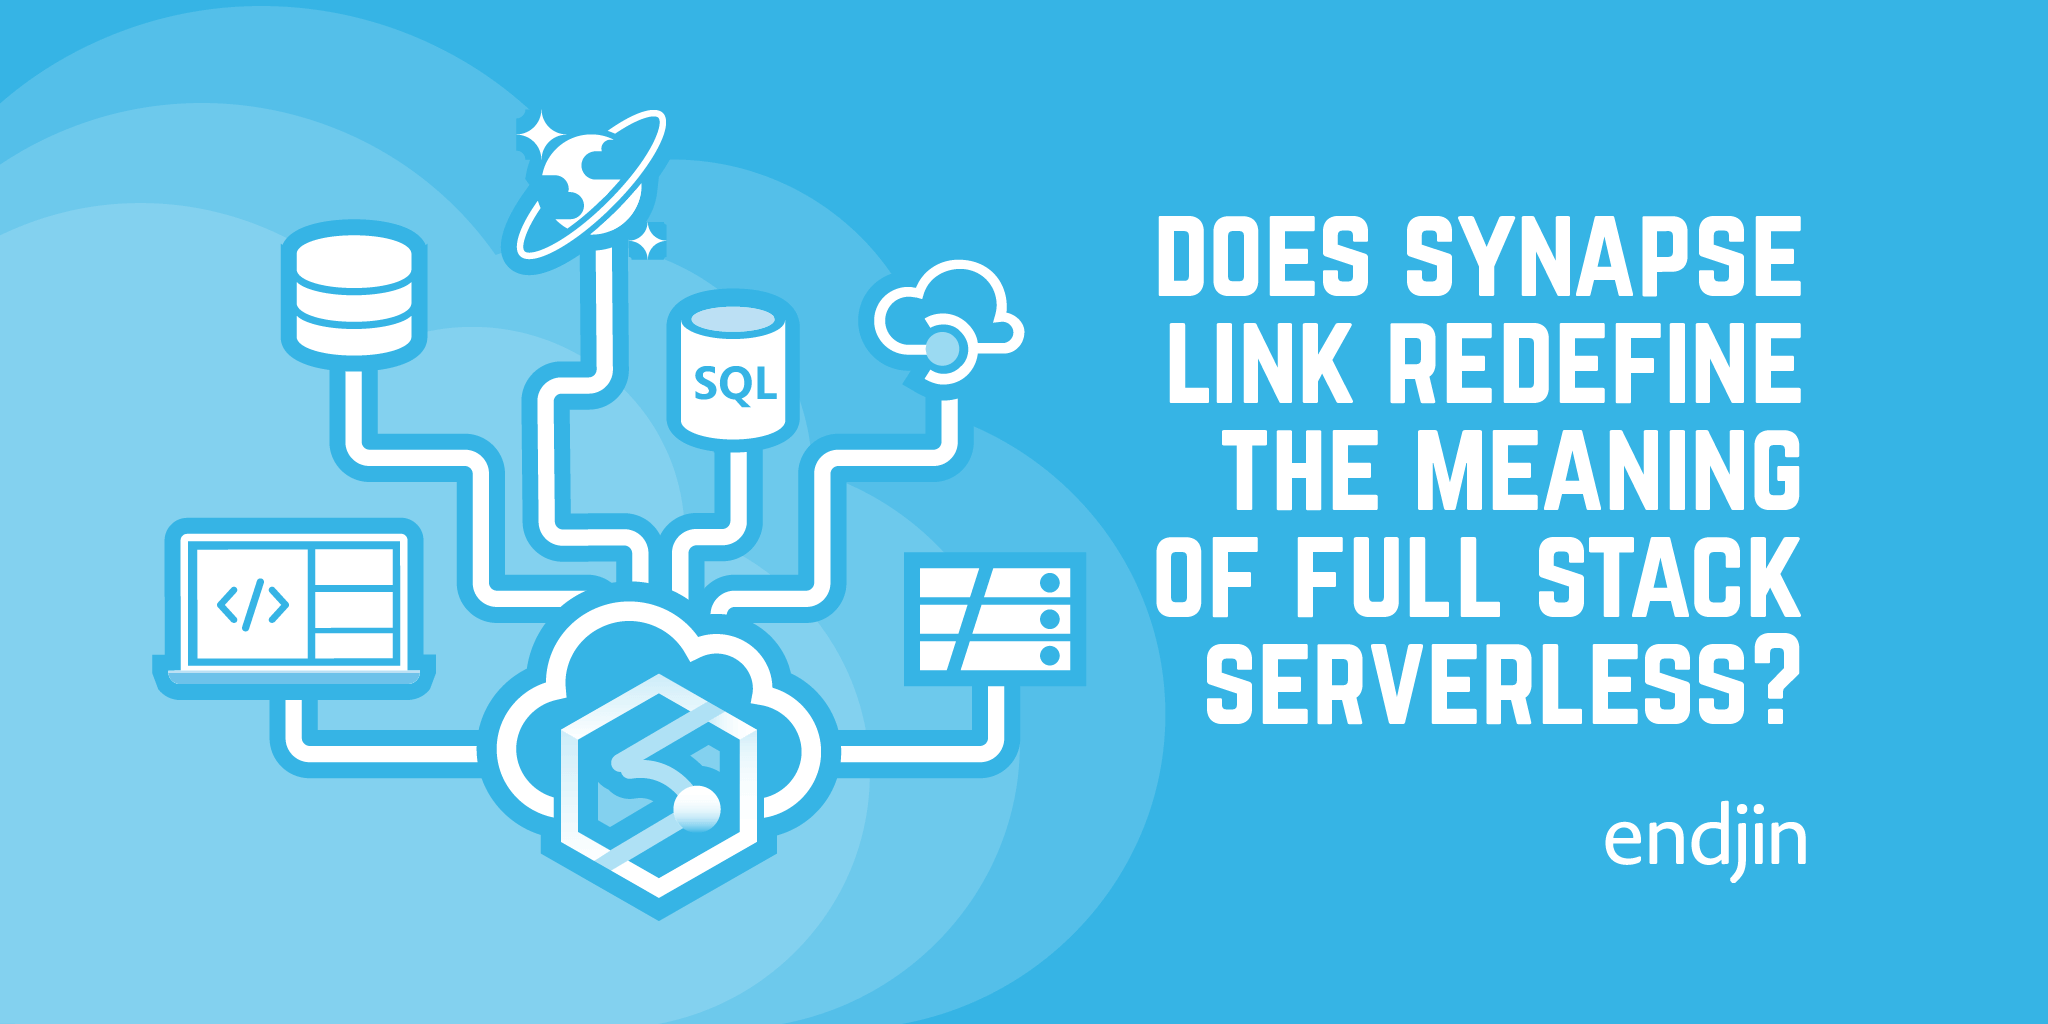 Does Azure Synapse Link redefine the meaning of full stack serverless?